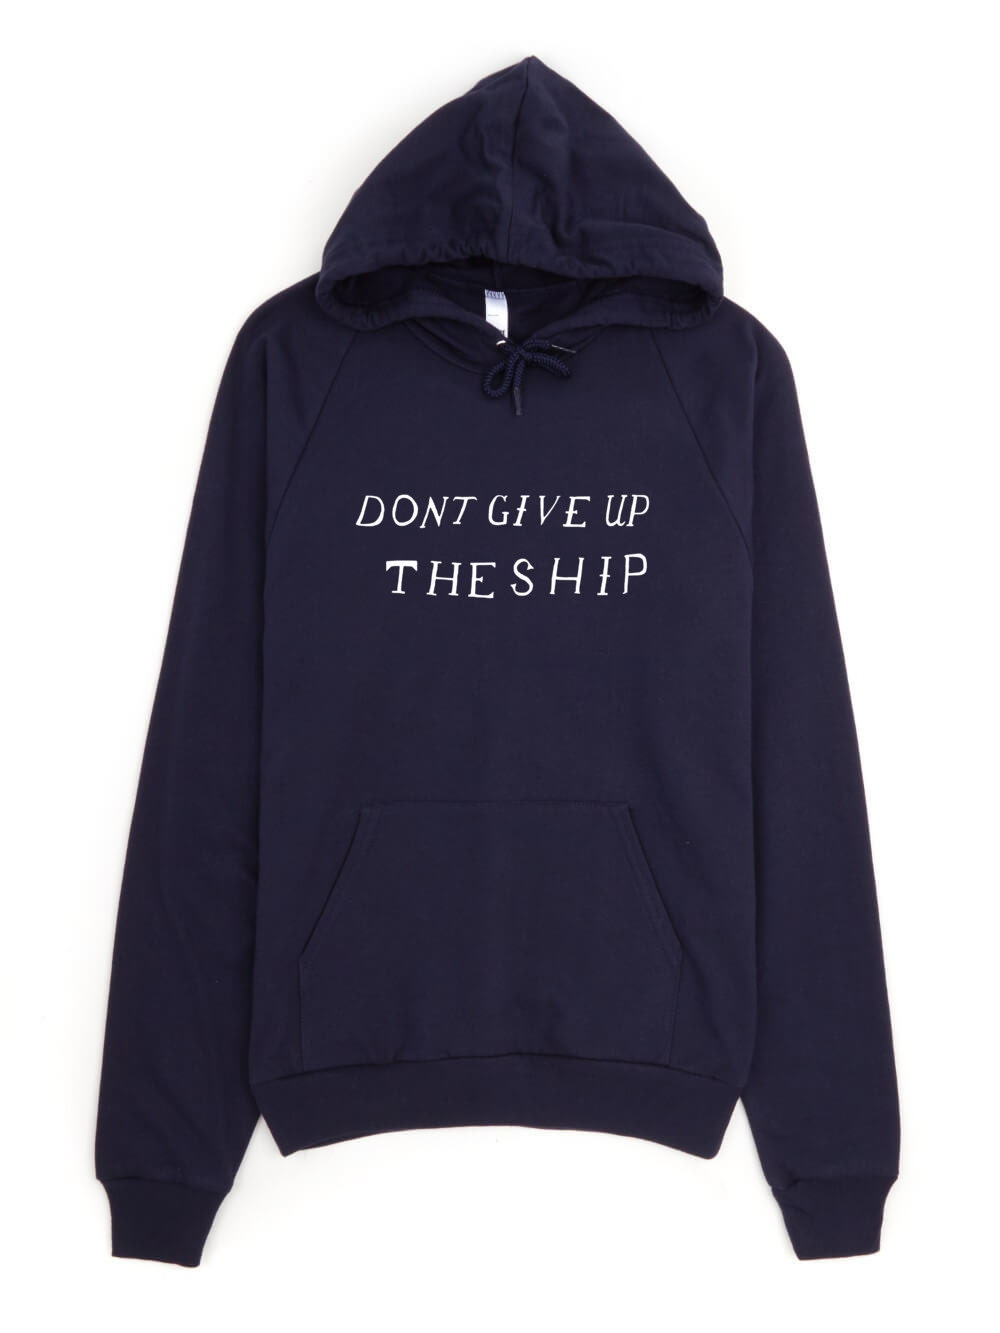 Don't Give Up The Ship Commodore Perry Battle Flag Hoodie